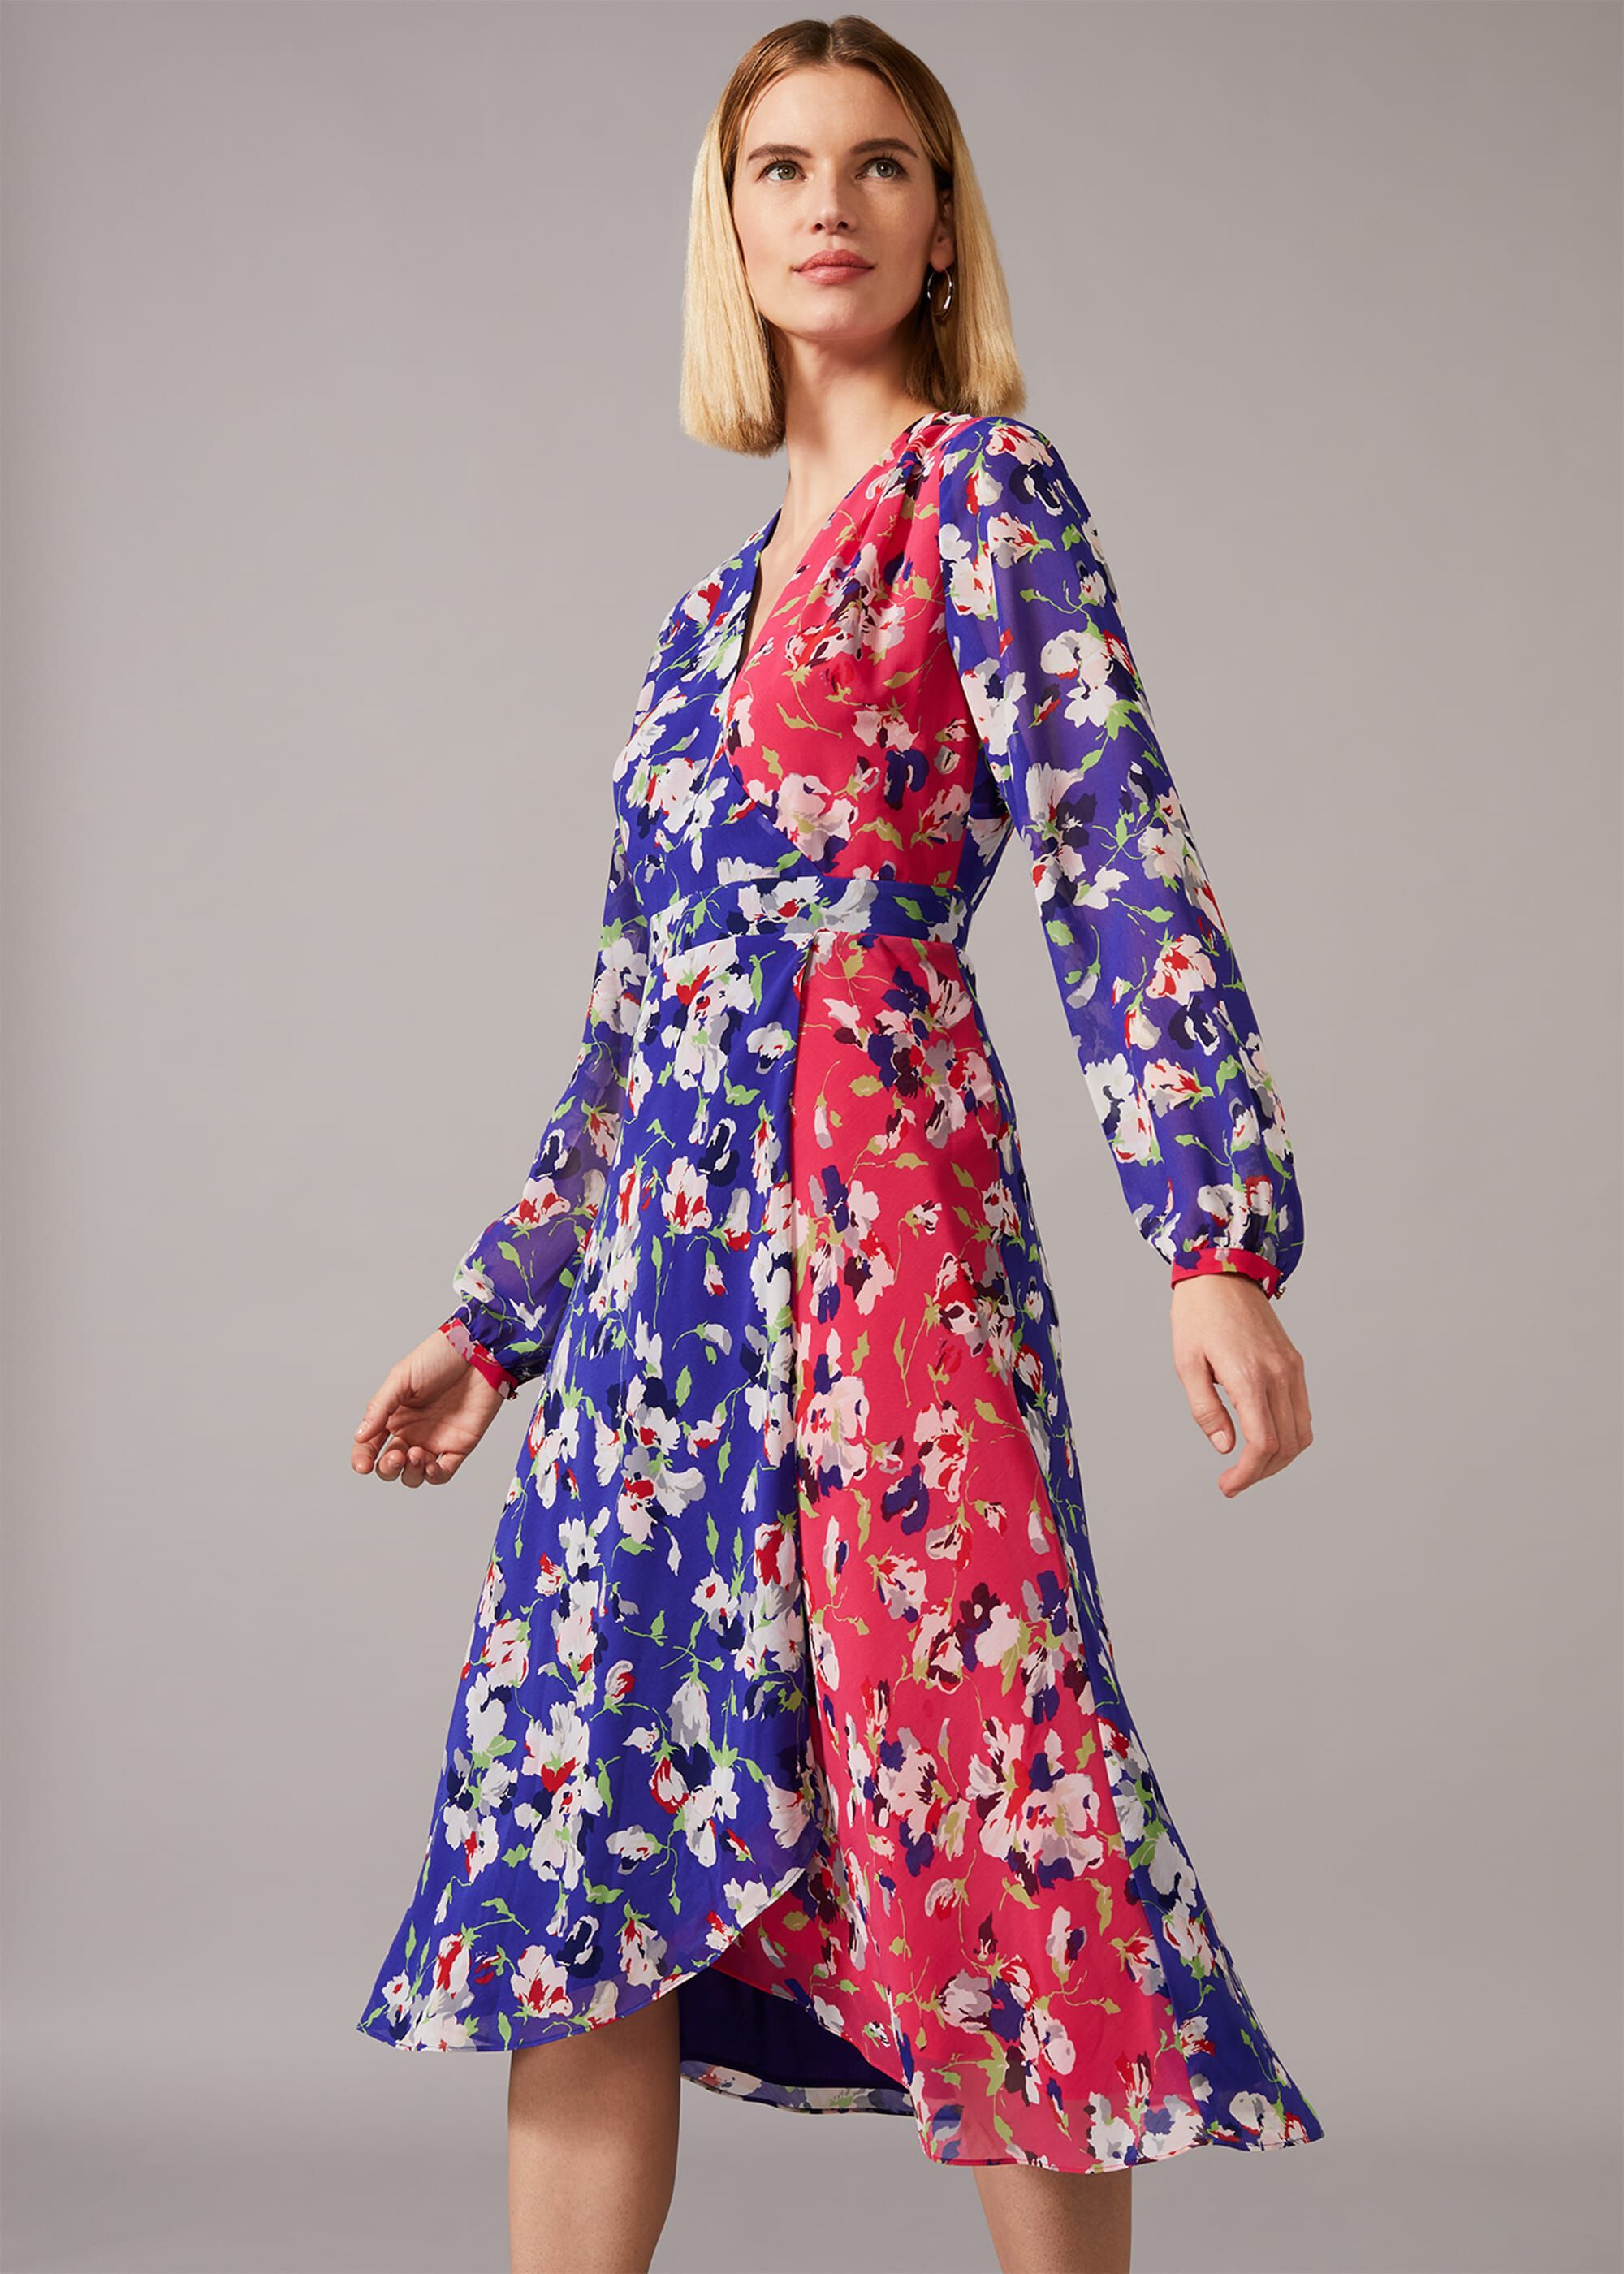 Phase Eight Claudette Patched Floral Dress, Blue, Wrap, Occasion Dress